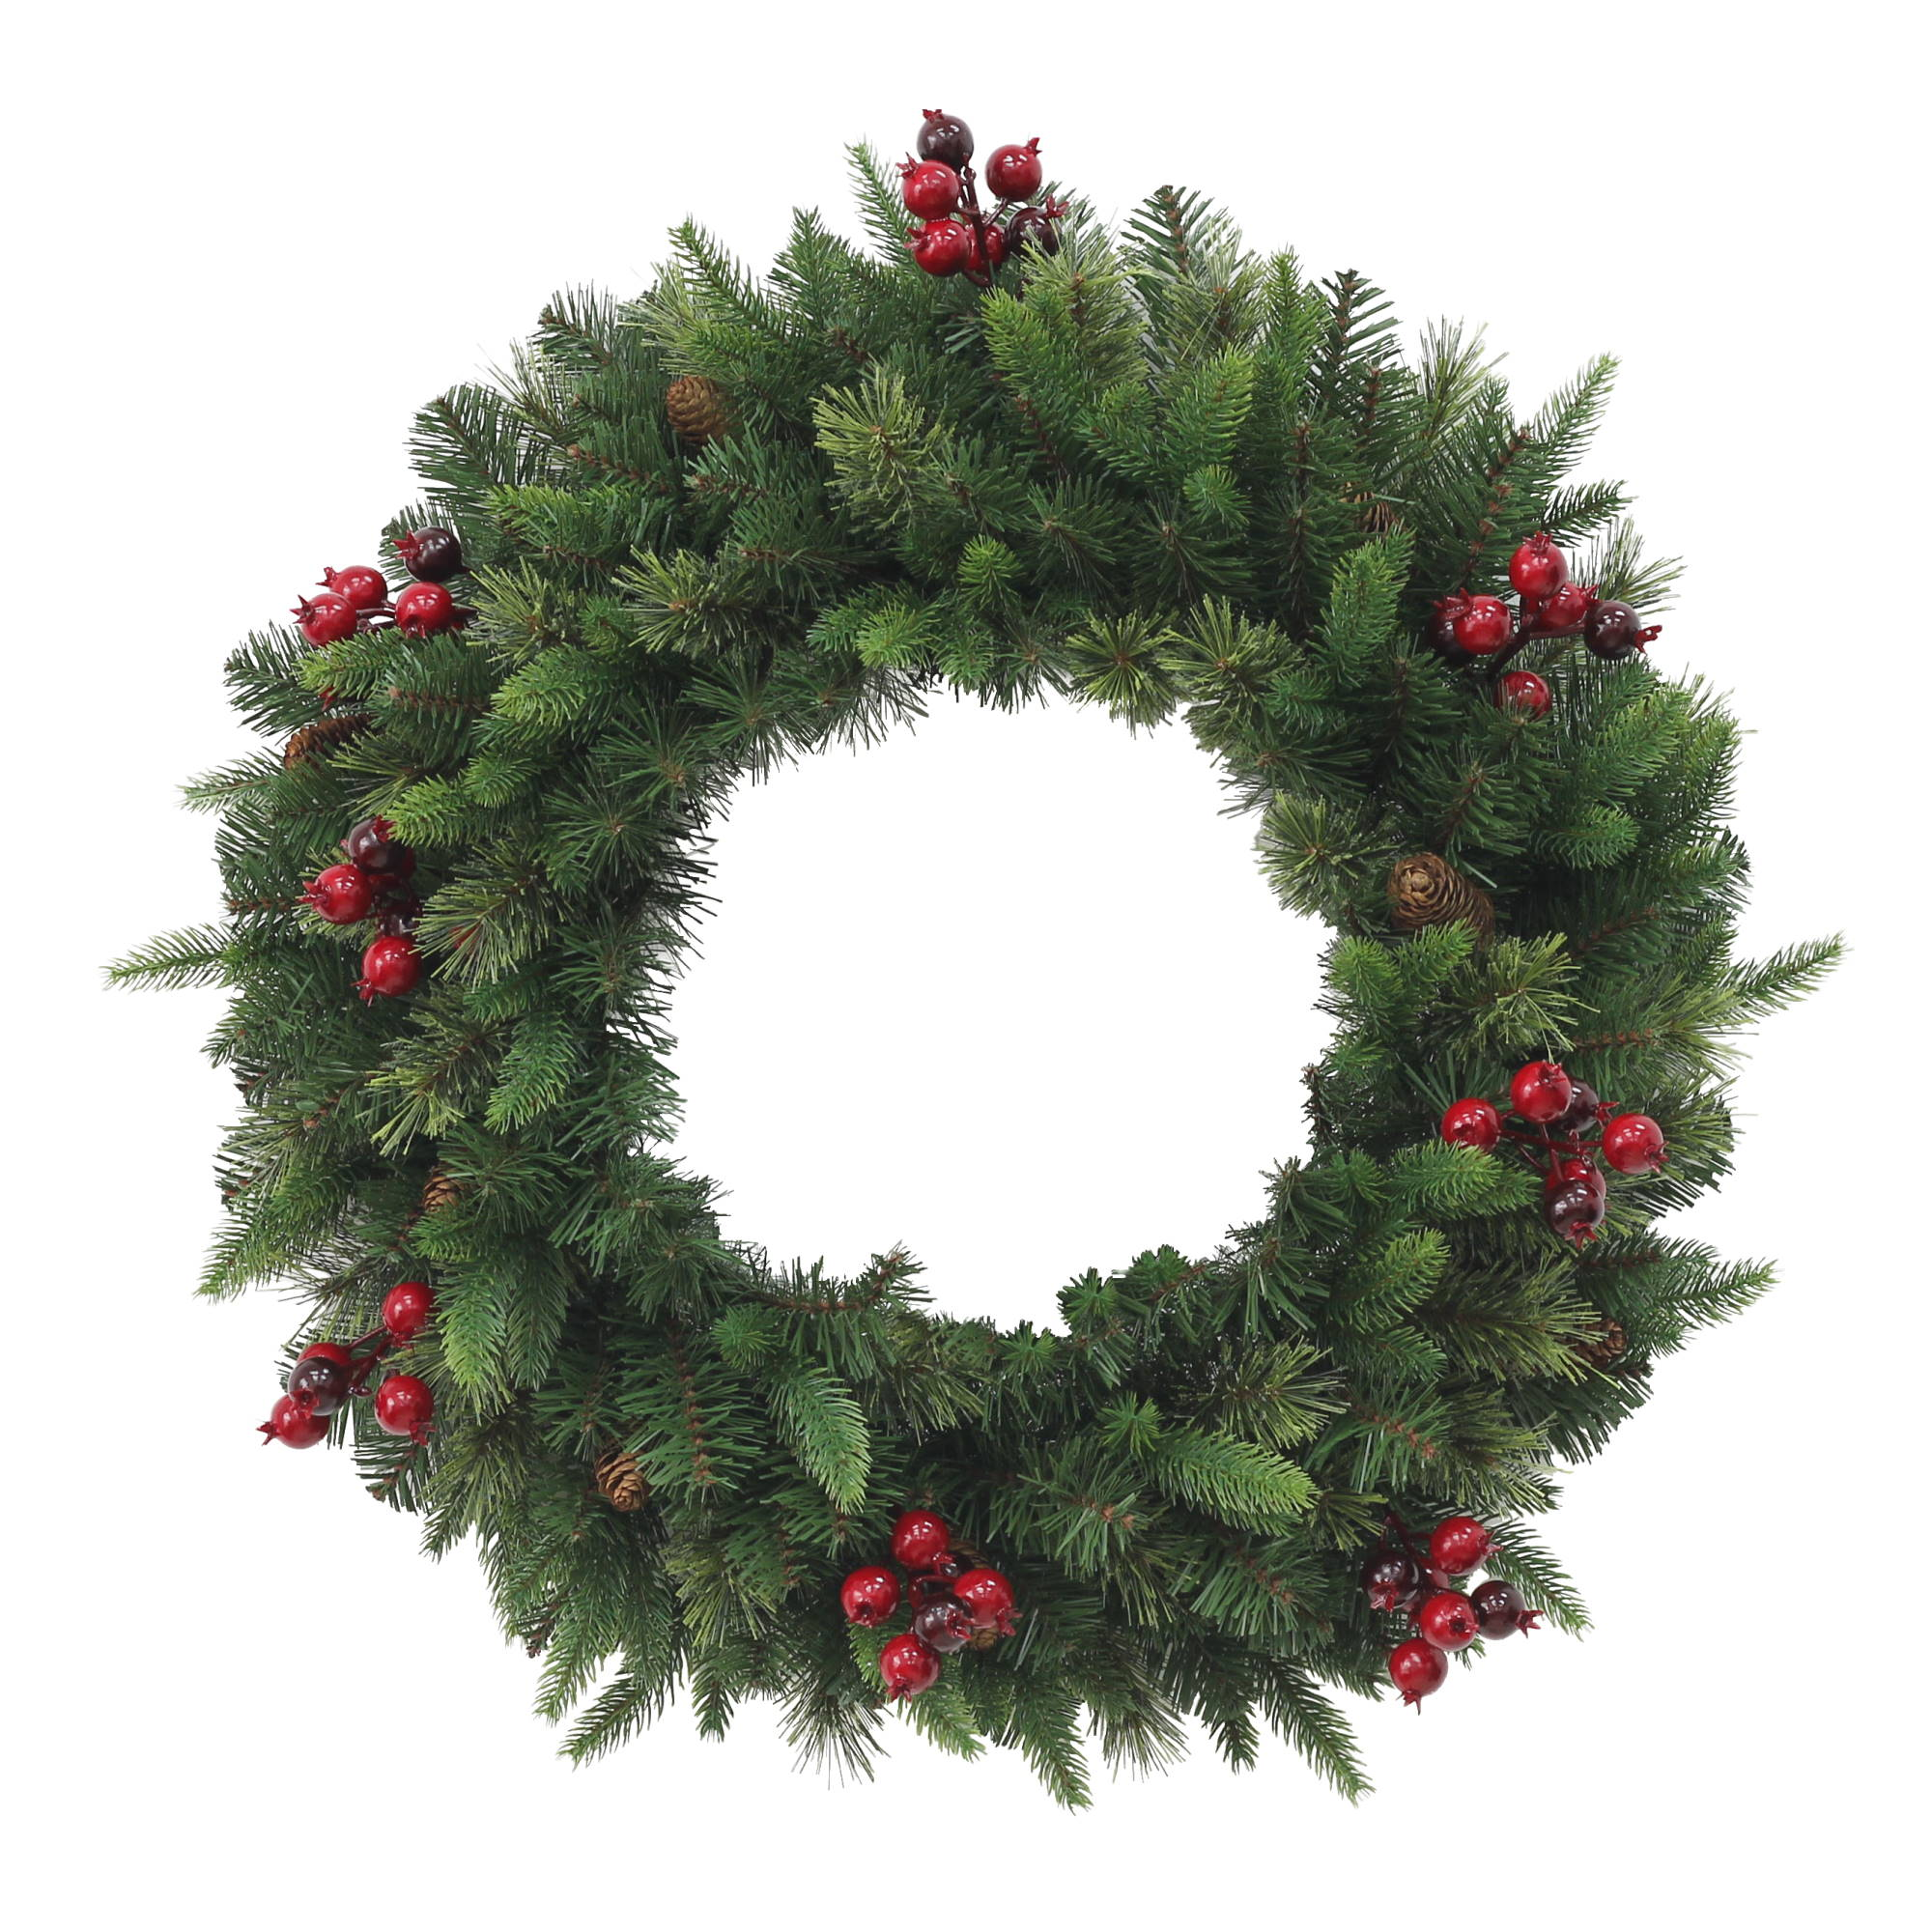 Pine Christmas Wreath - 60cm